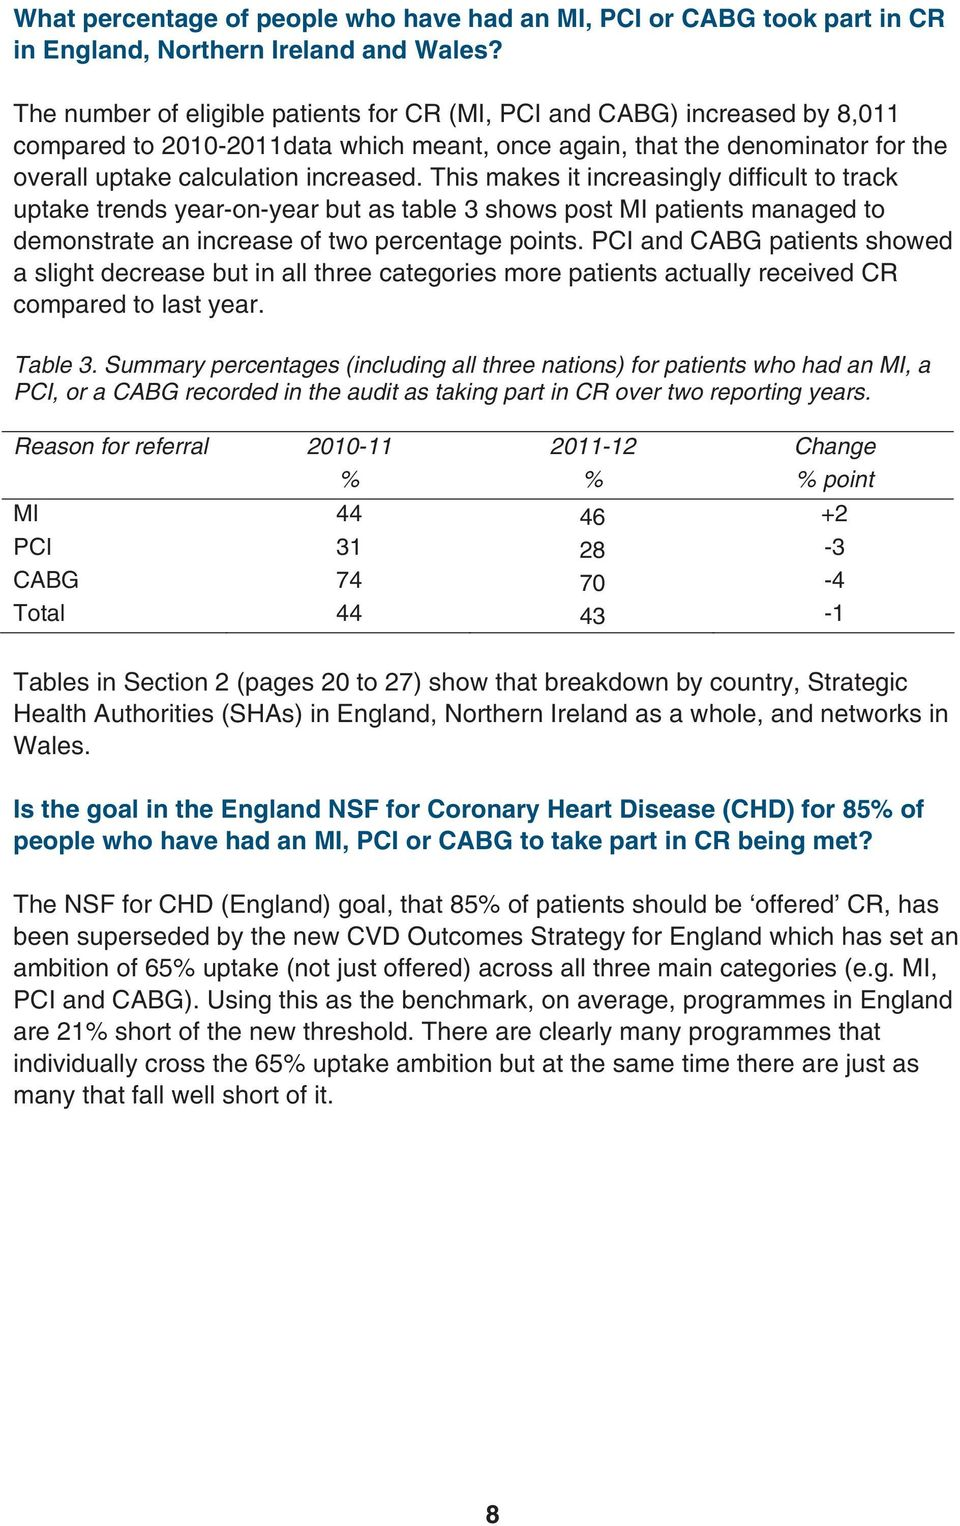 This makes it increasingly difficult to track uptake trends year-on-year but as table 3 shows post MI patients managed to demonstrate an increase of two percentage points.